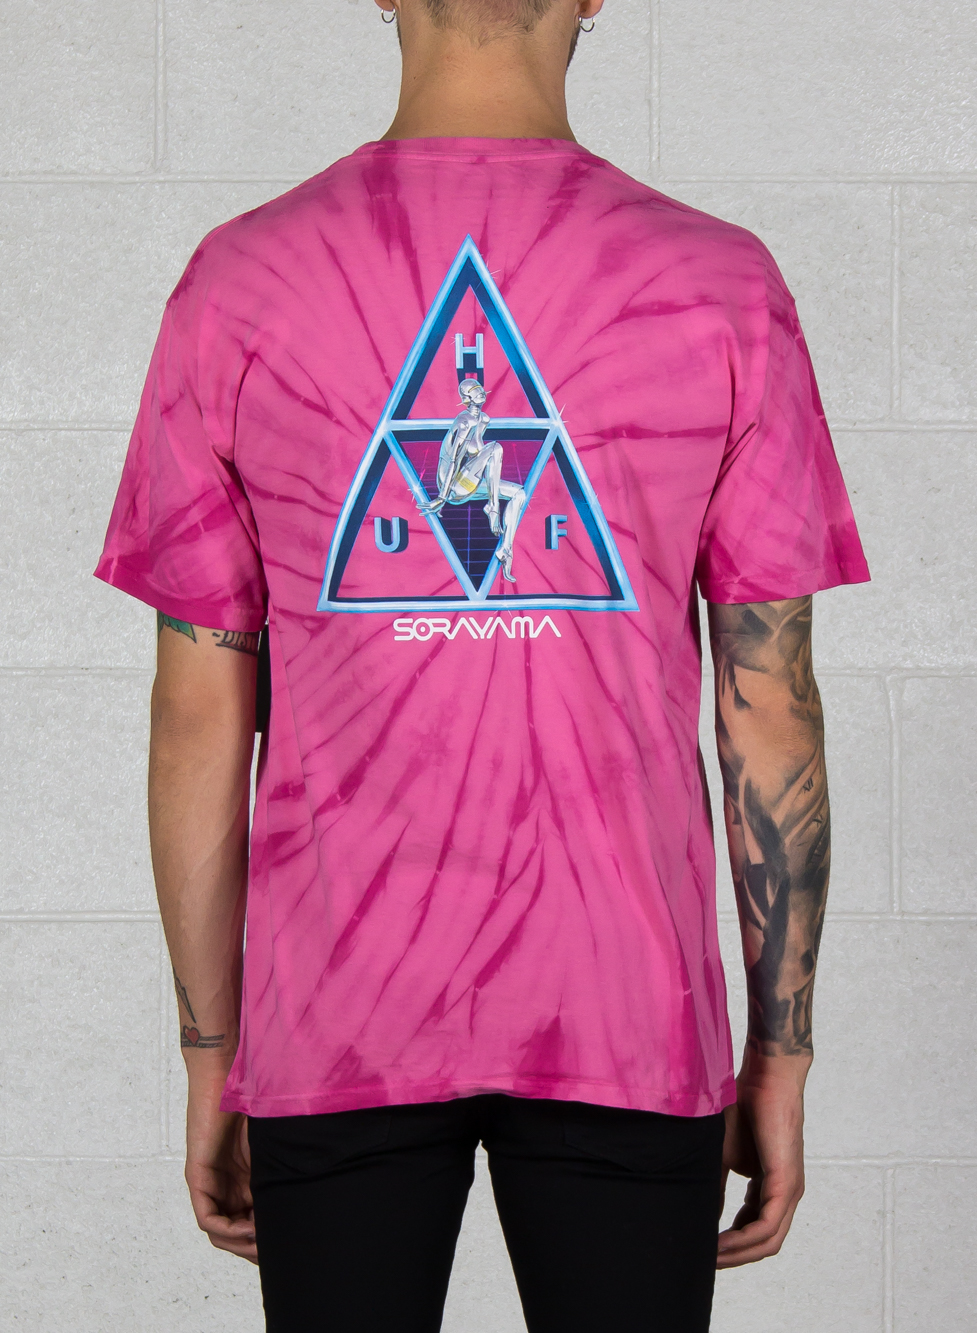 22ad617362bc1 HUF mens Sorayama TT SS Tee Shirt Pink Medium New w/Tag Skateboard ...